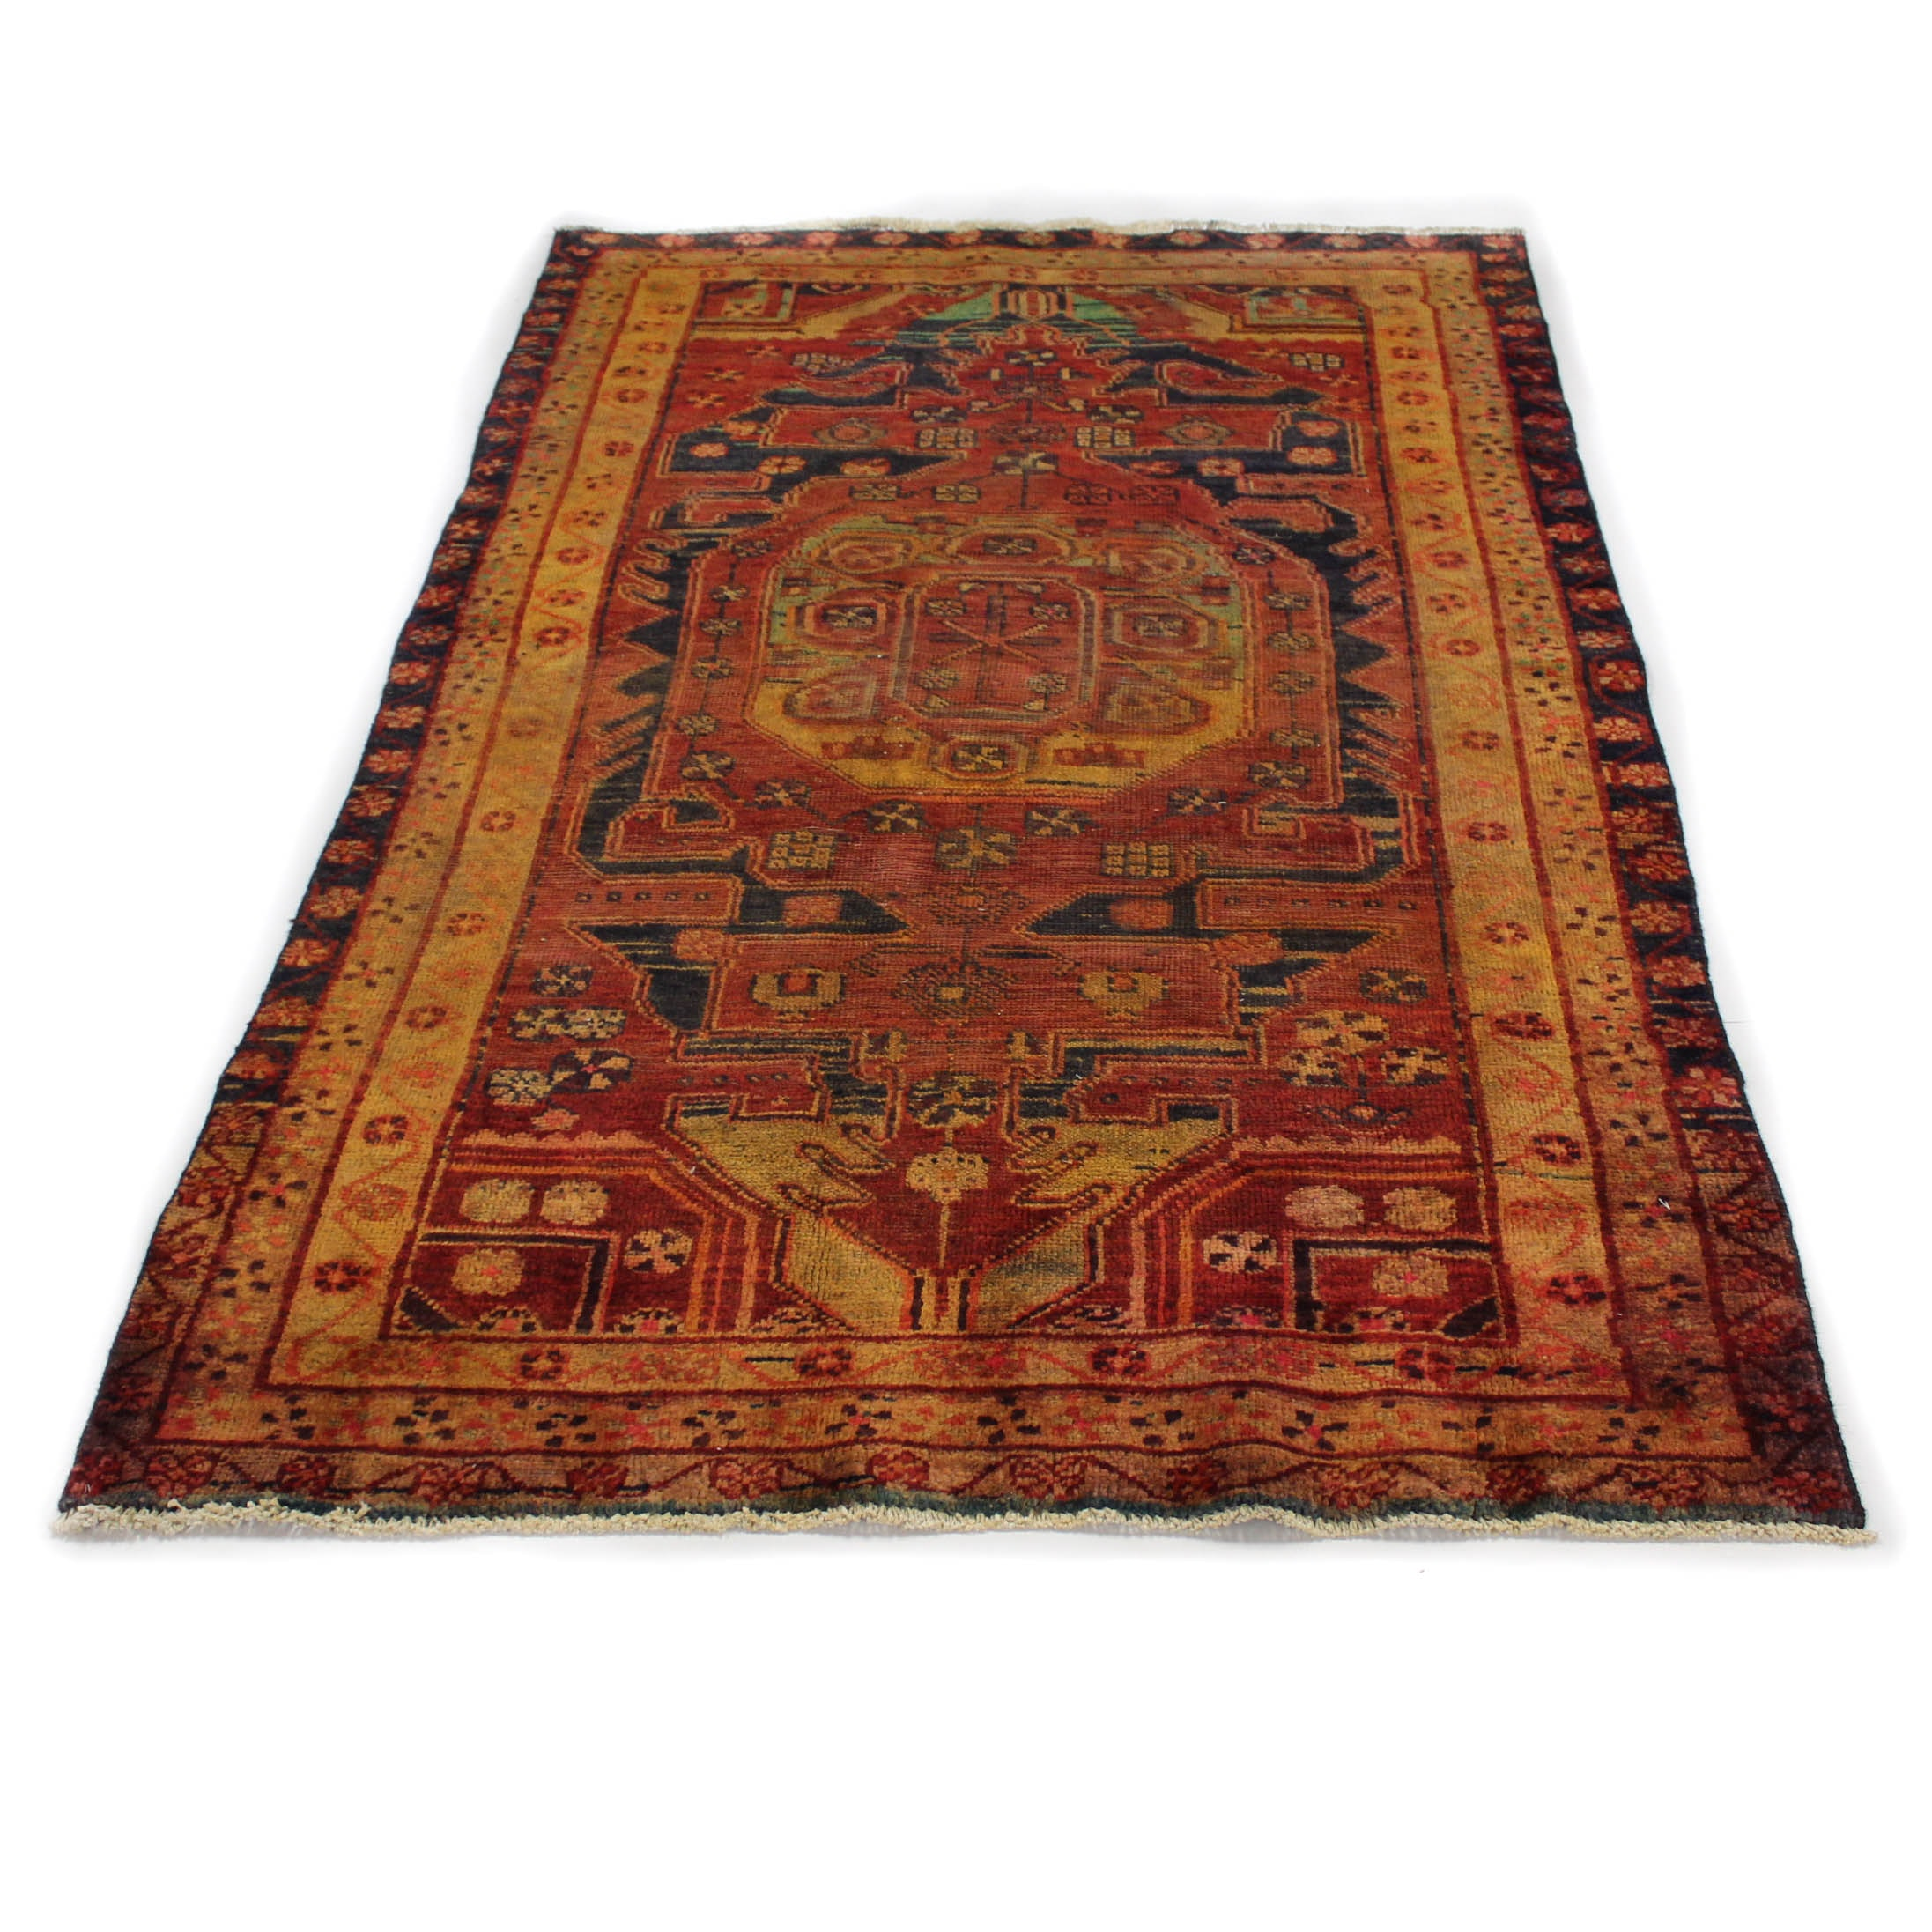 Vintage Hand-Knotted Persian Bijar Area Rug